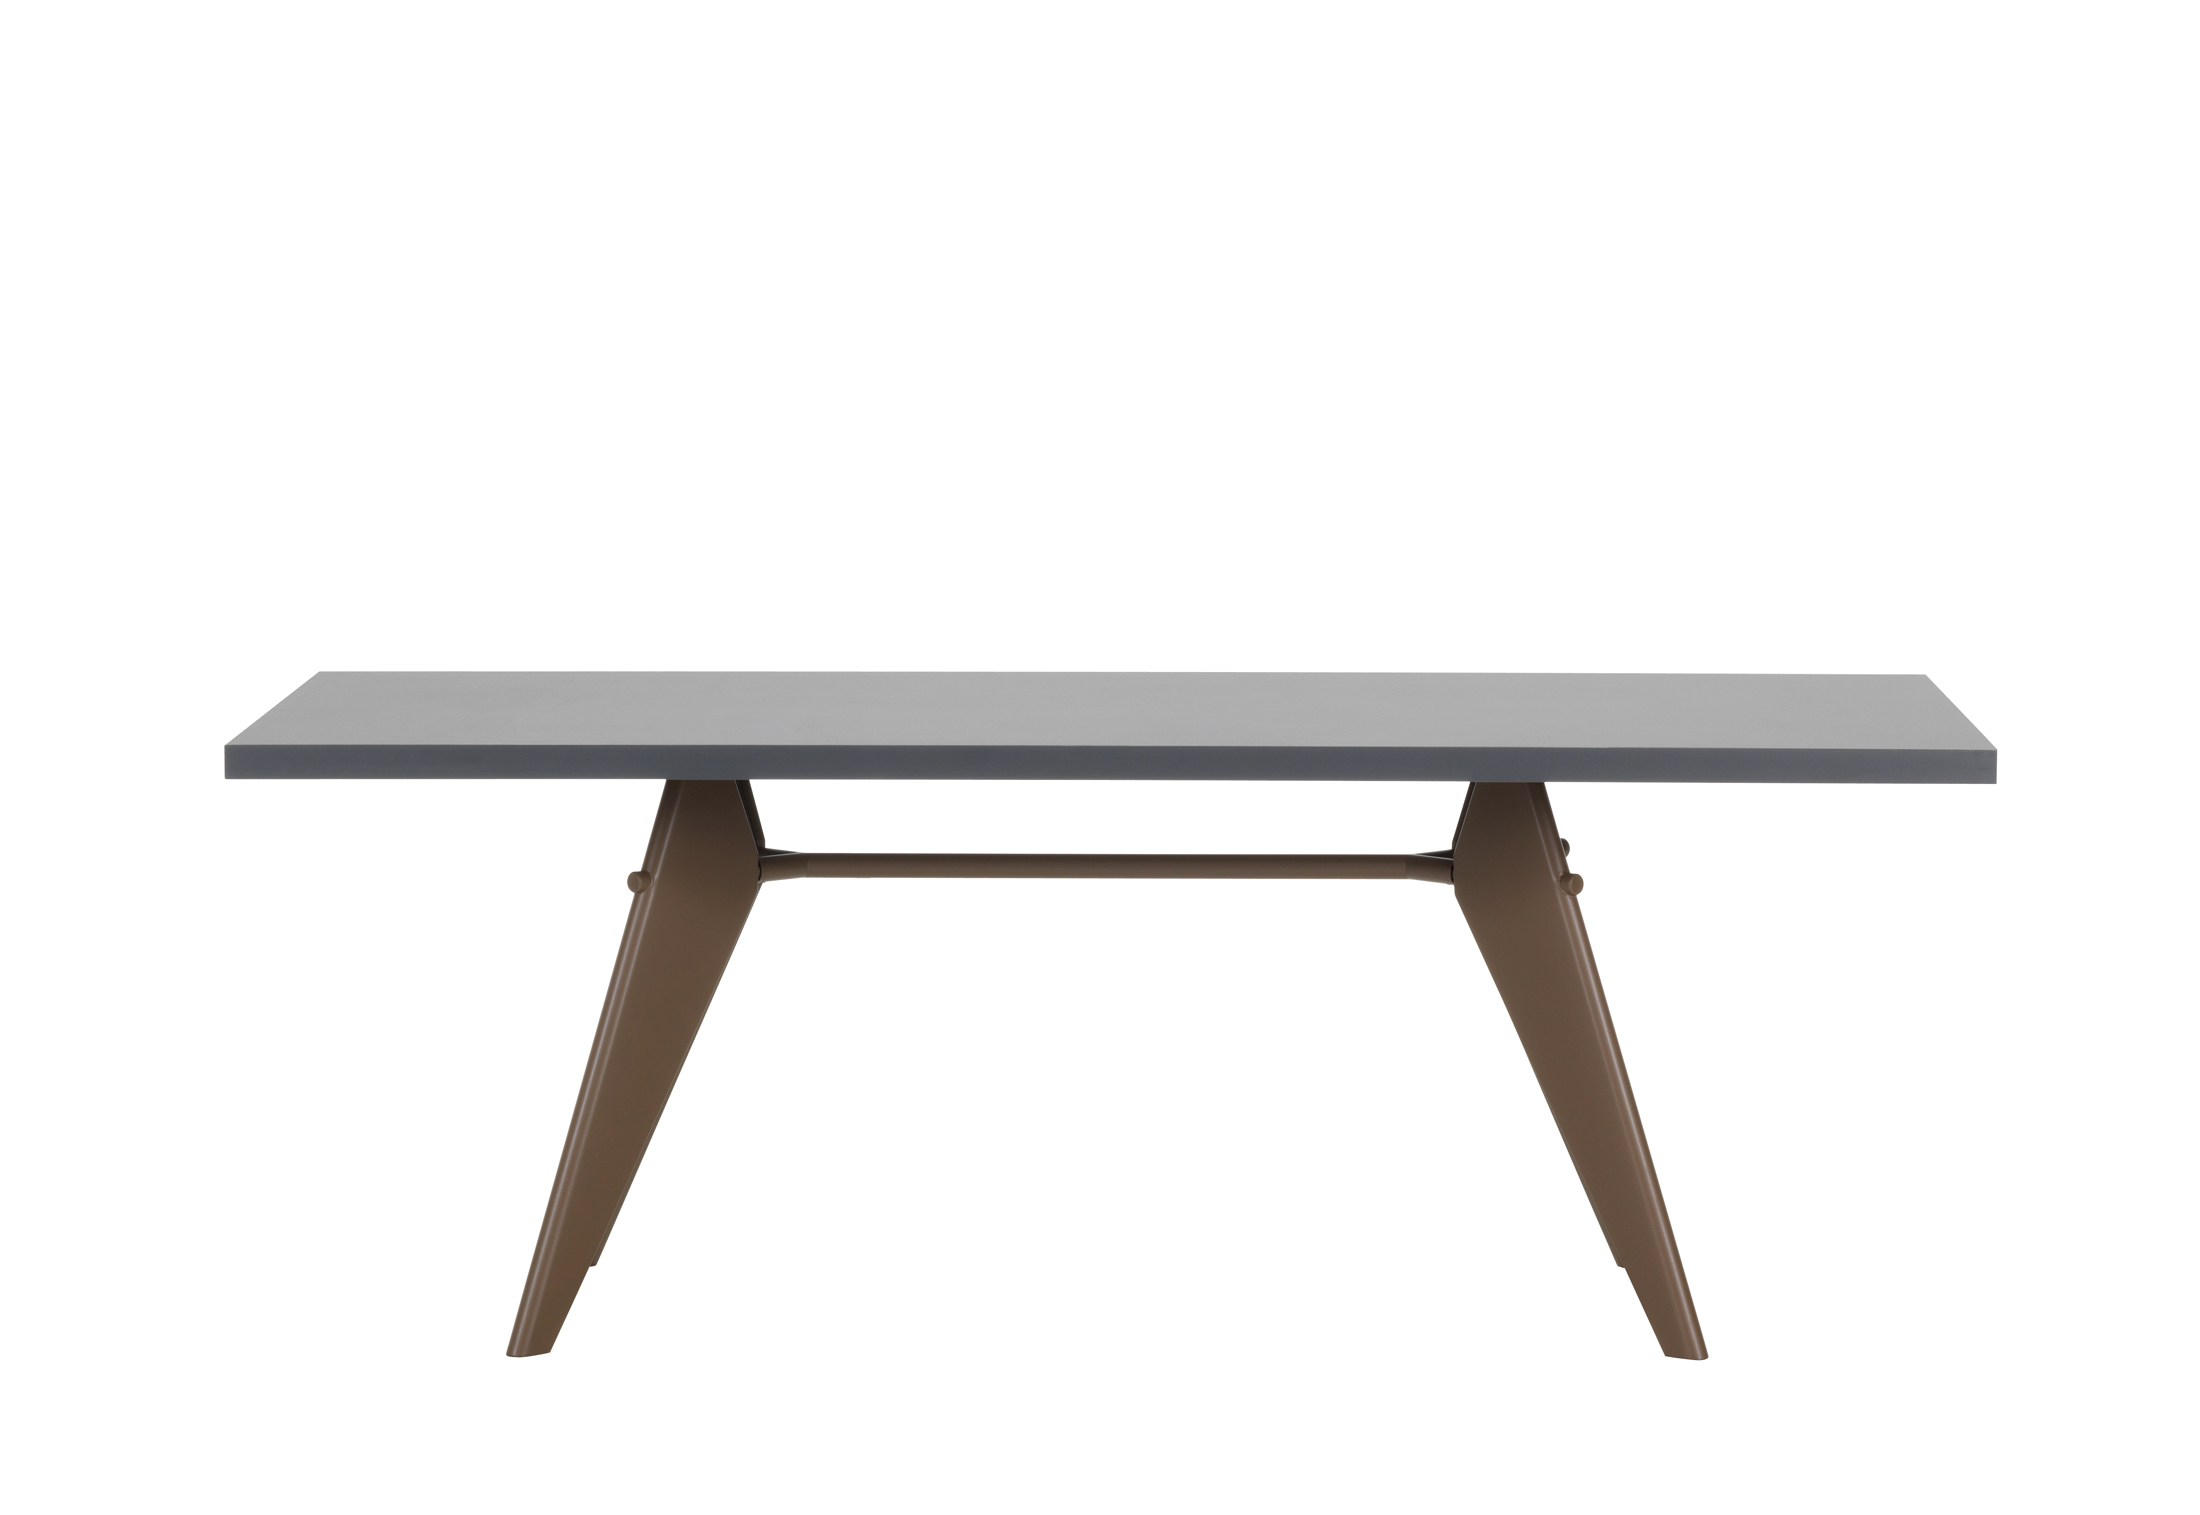 Timeless Design Em Table By Jean Prouv For Vitra Sohomod Blog